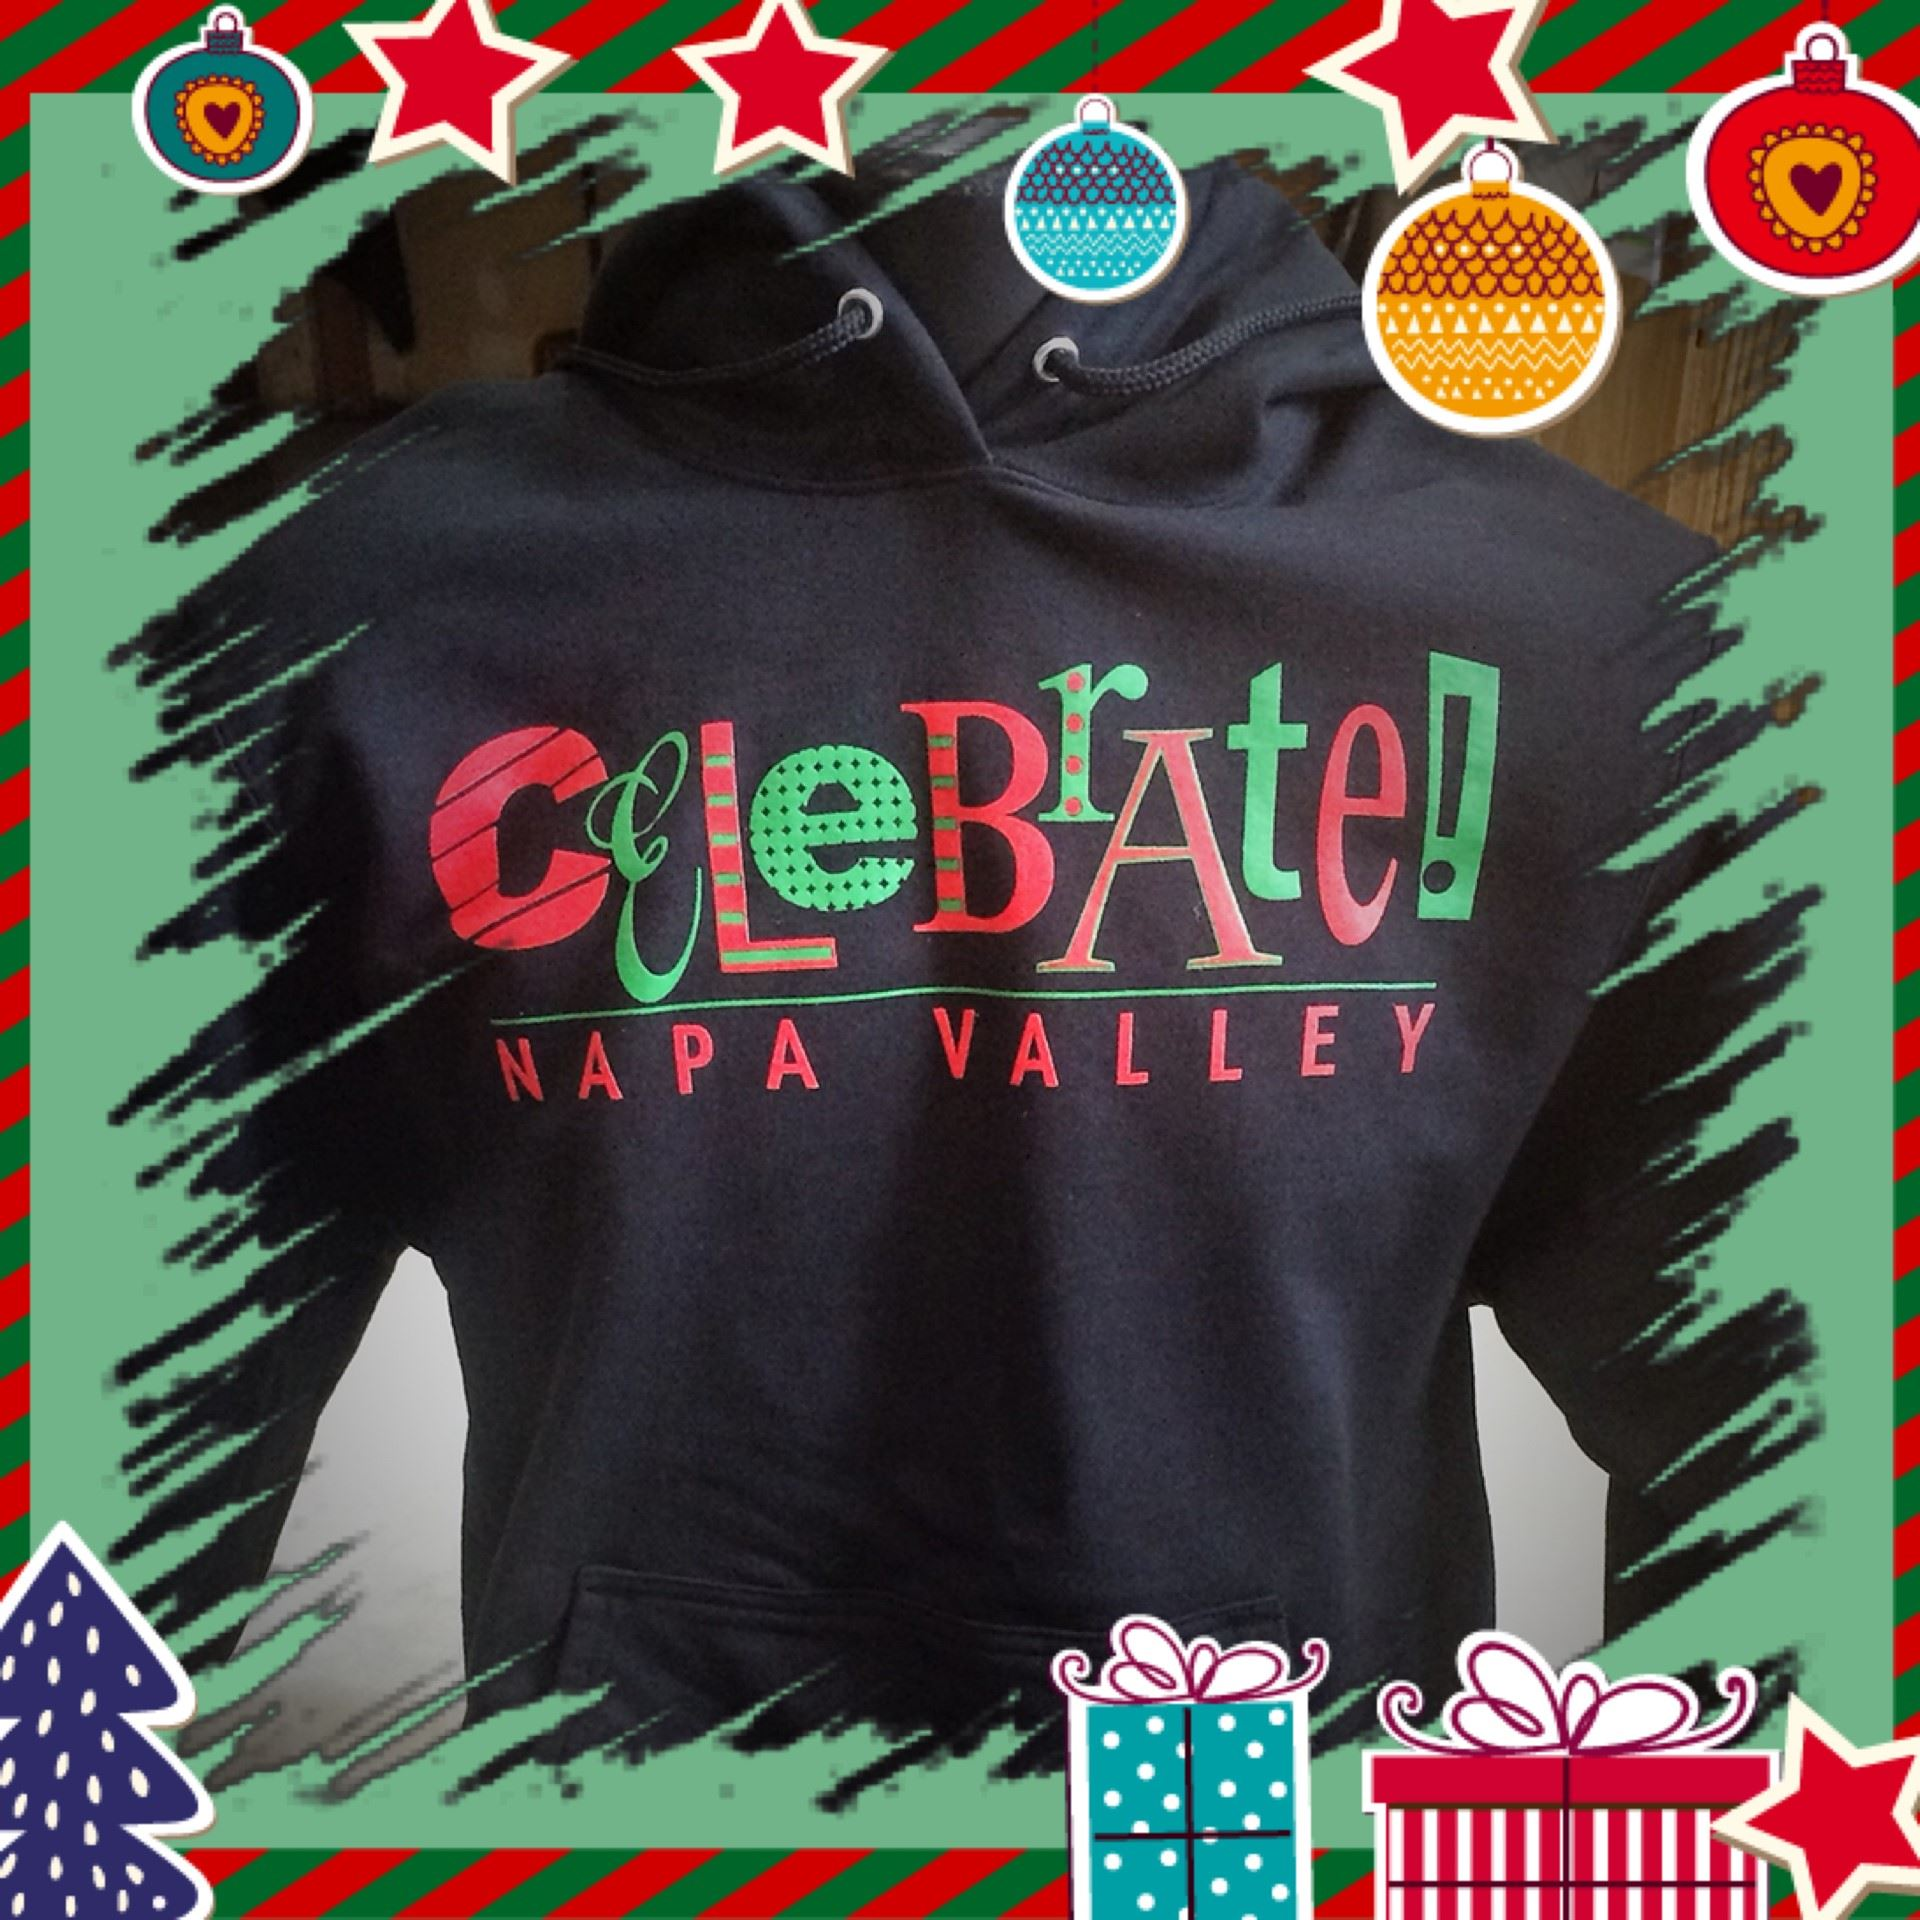 Celebrate! Napa Valley Holiday Sweatshirts